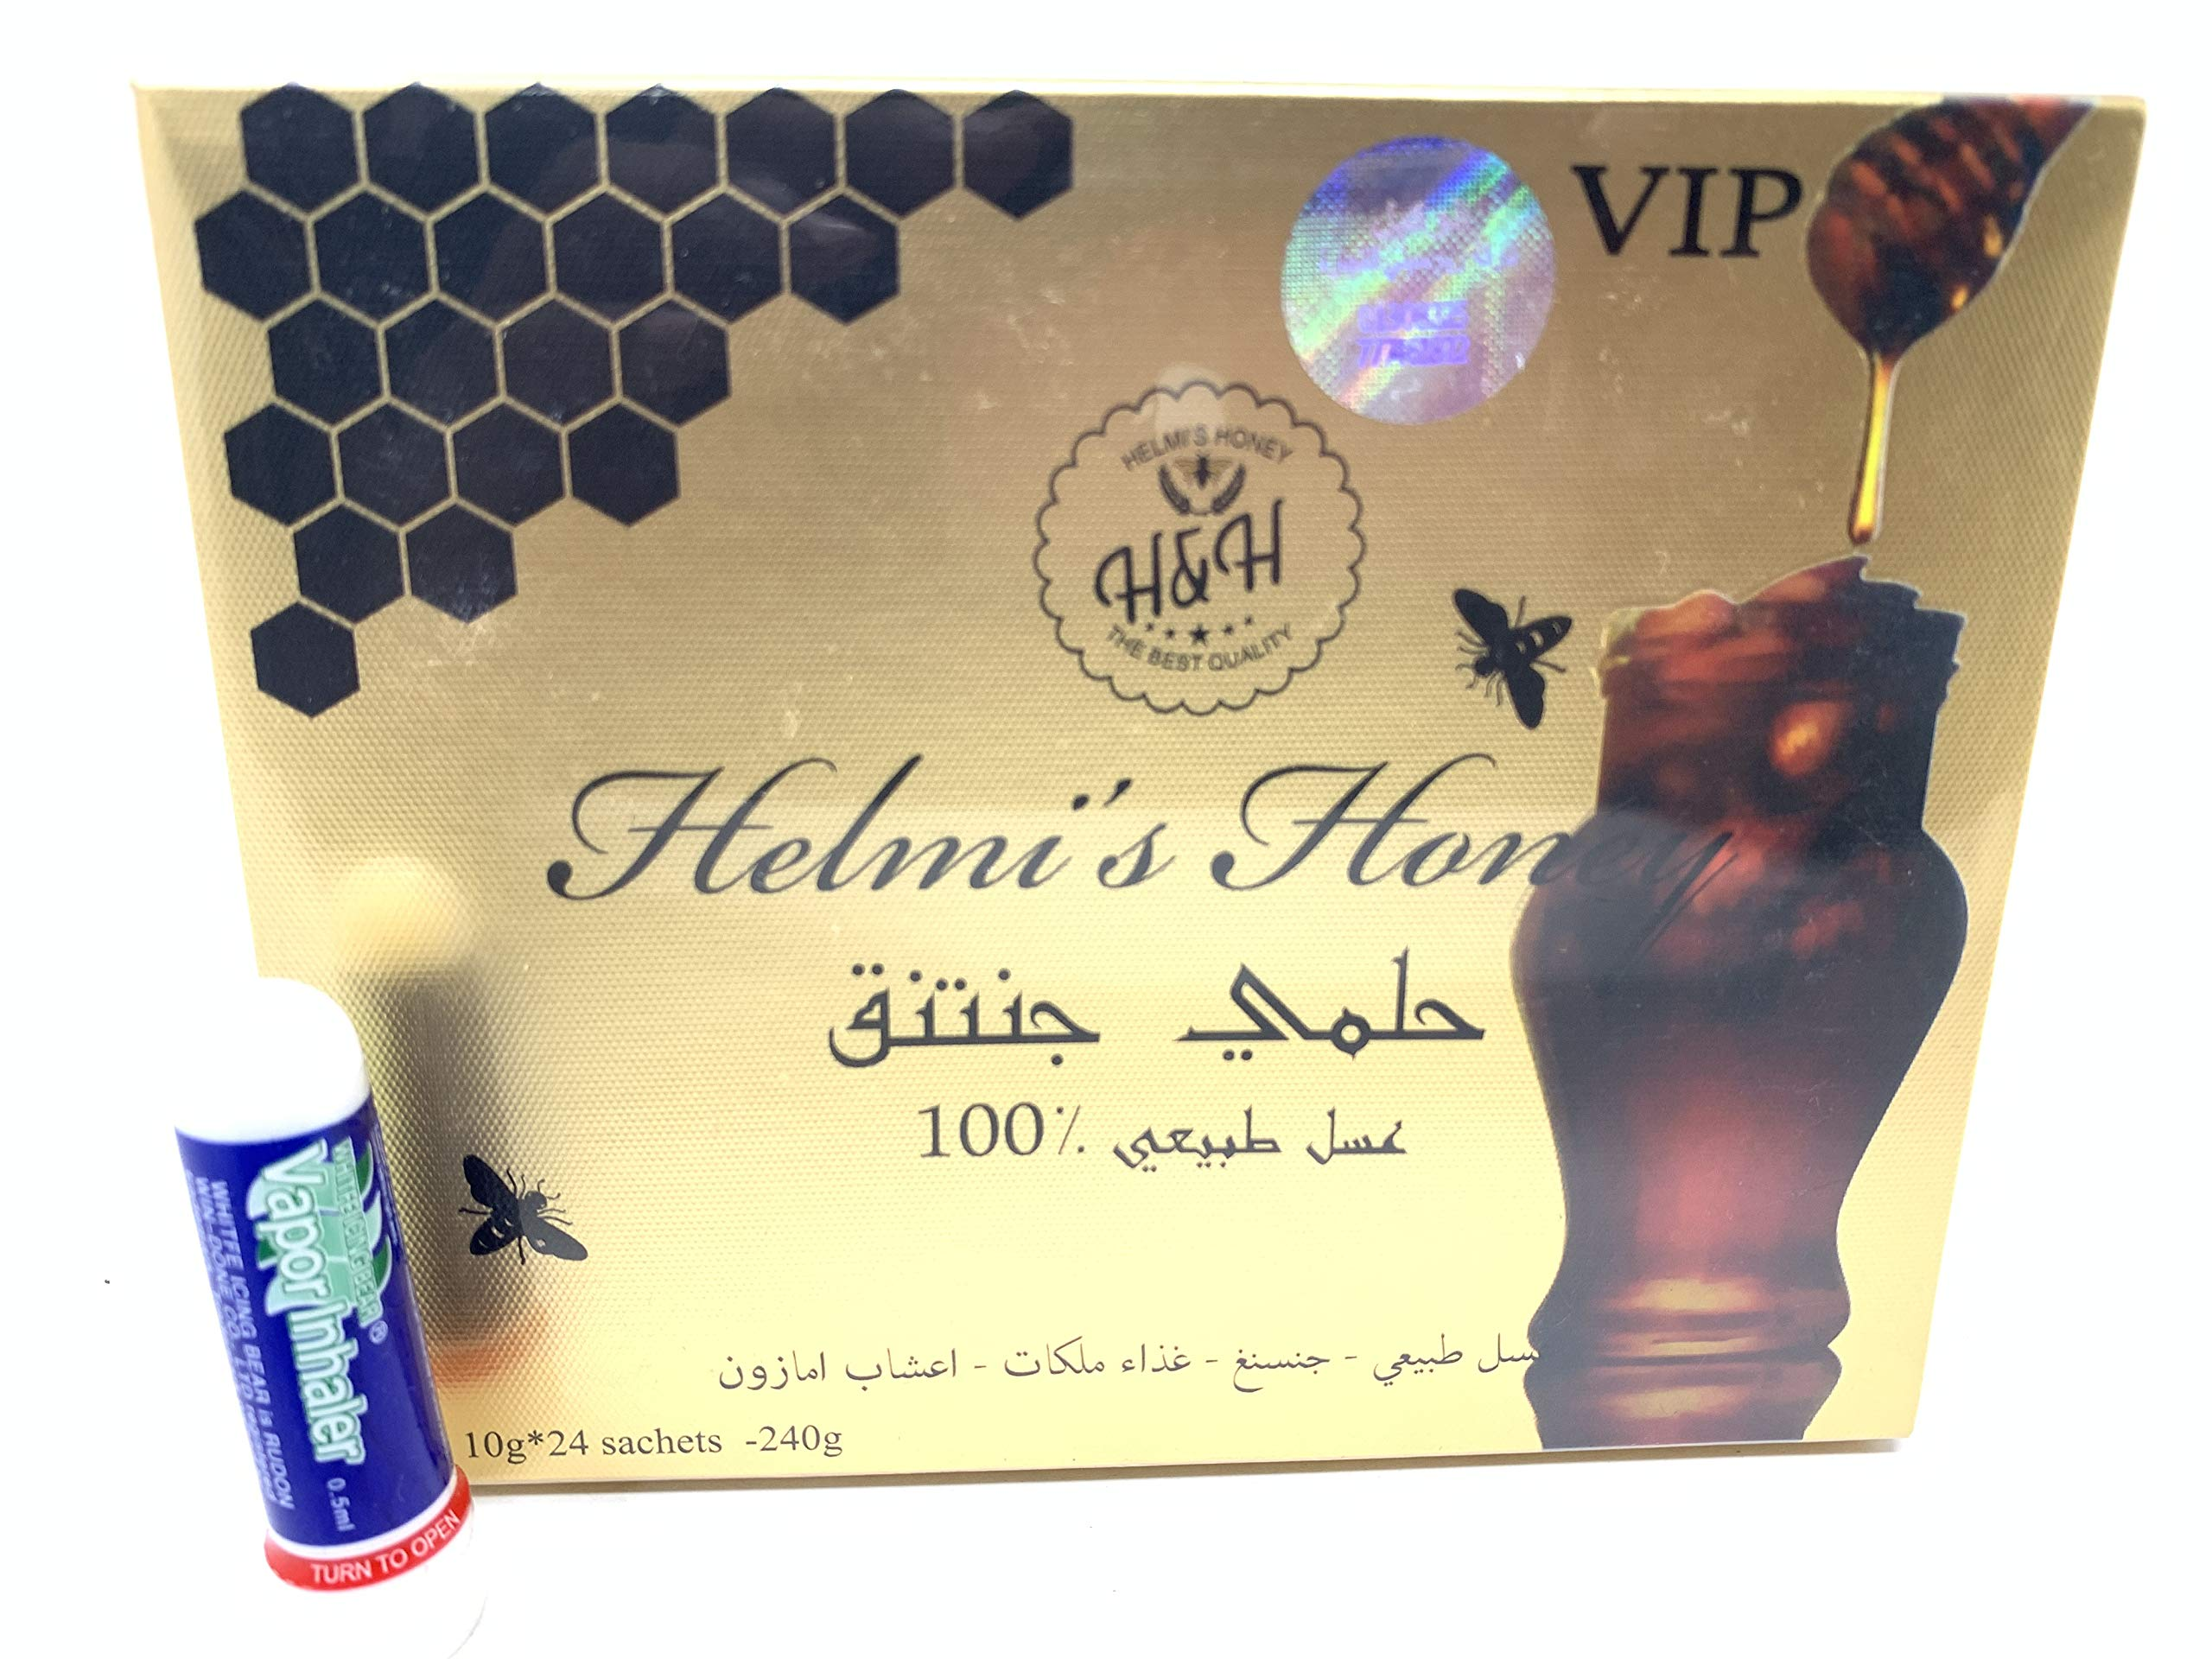 2 Boxes Helmi's Honey V.I.P with Gensing Royal Jelly Amazon Herbs 10g Sachets 24 Per Box